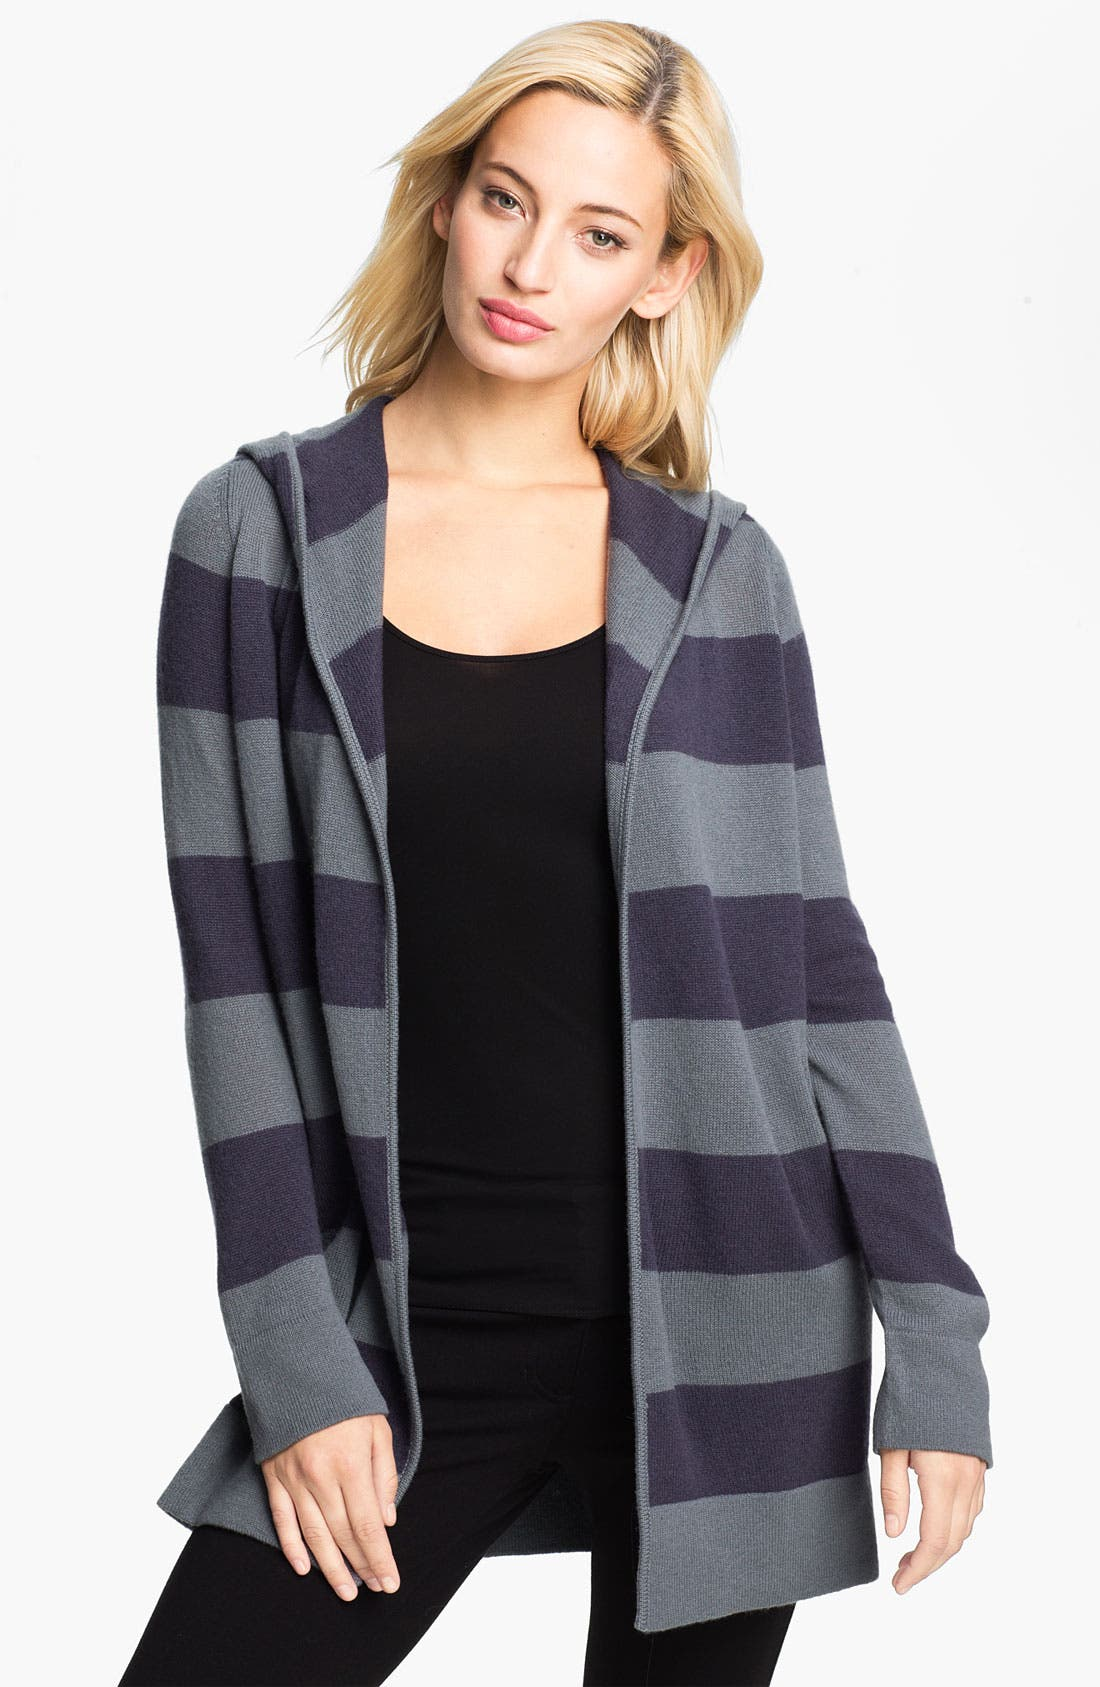 Main Image - Christopher Fischer 'Lara' Hooded Cashmere Cardigan (Online Exclusive)